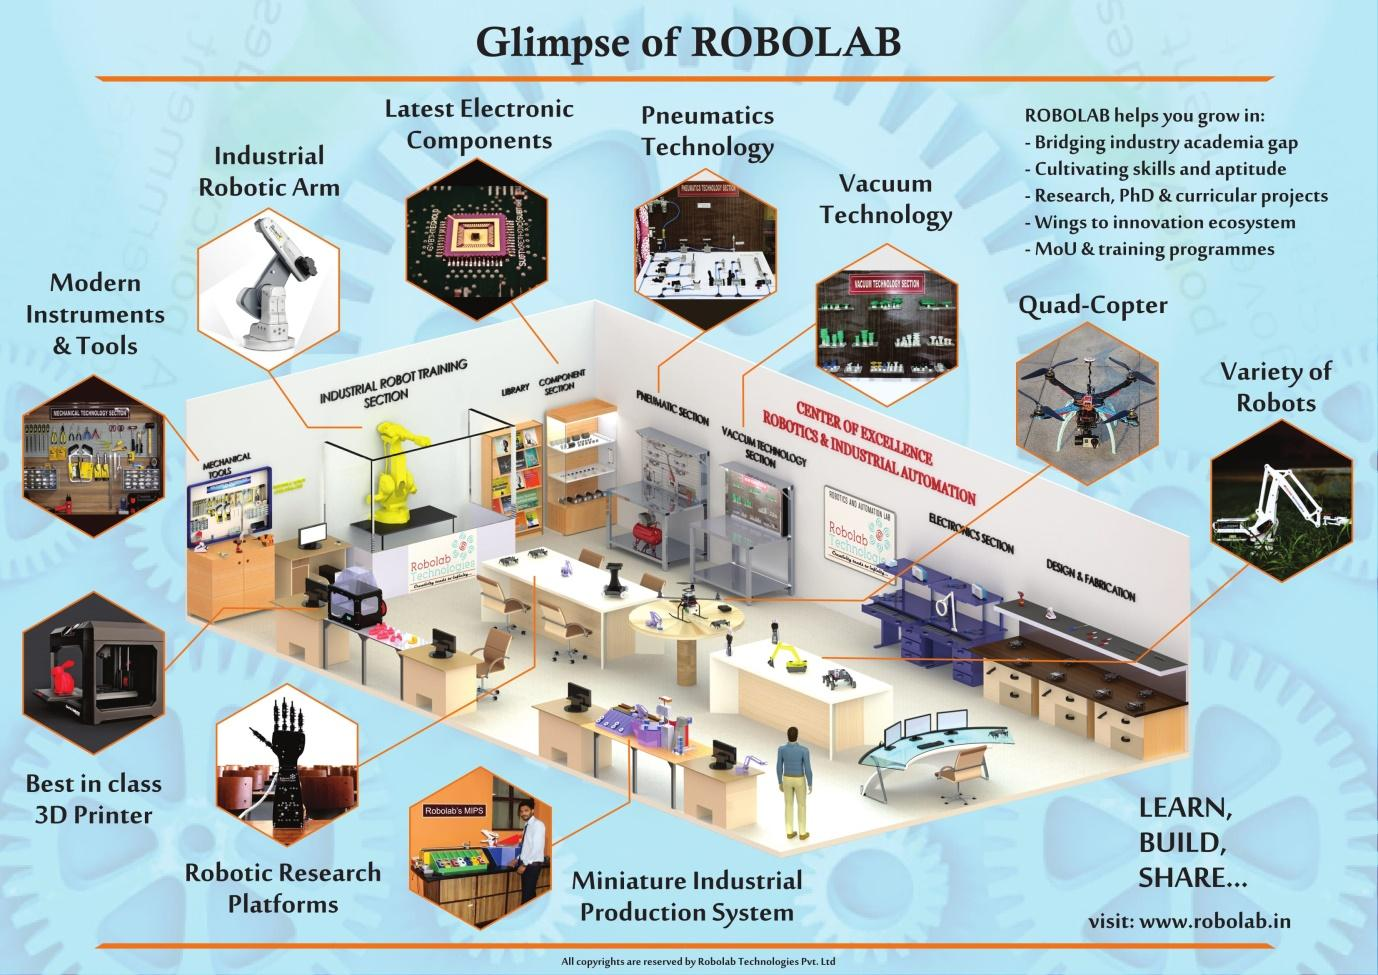 C:\Users\Sales\Desktop\ARTICLES\Company Profile\(APAC)Disruptive Companies that Changed the BUsiness World\Robolab Technologies\Glimpse of Robolab.jpg